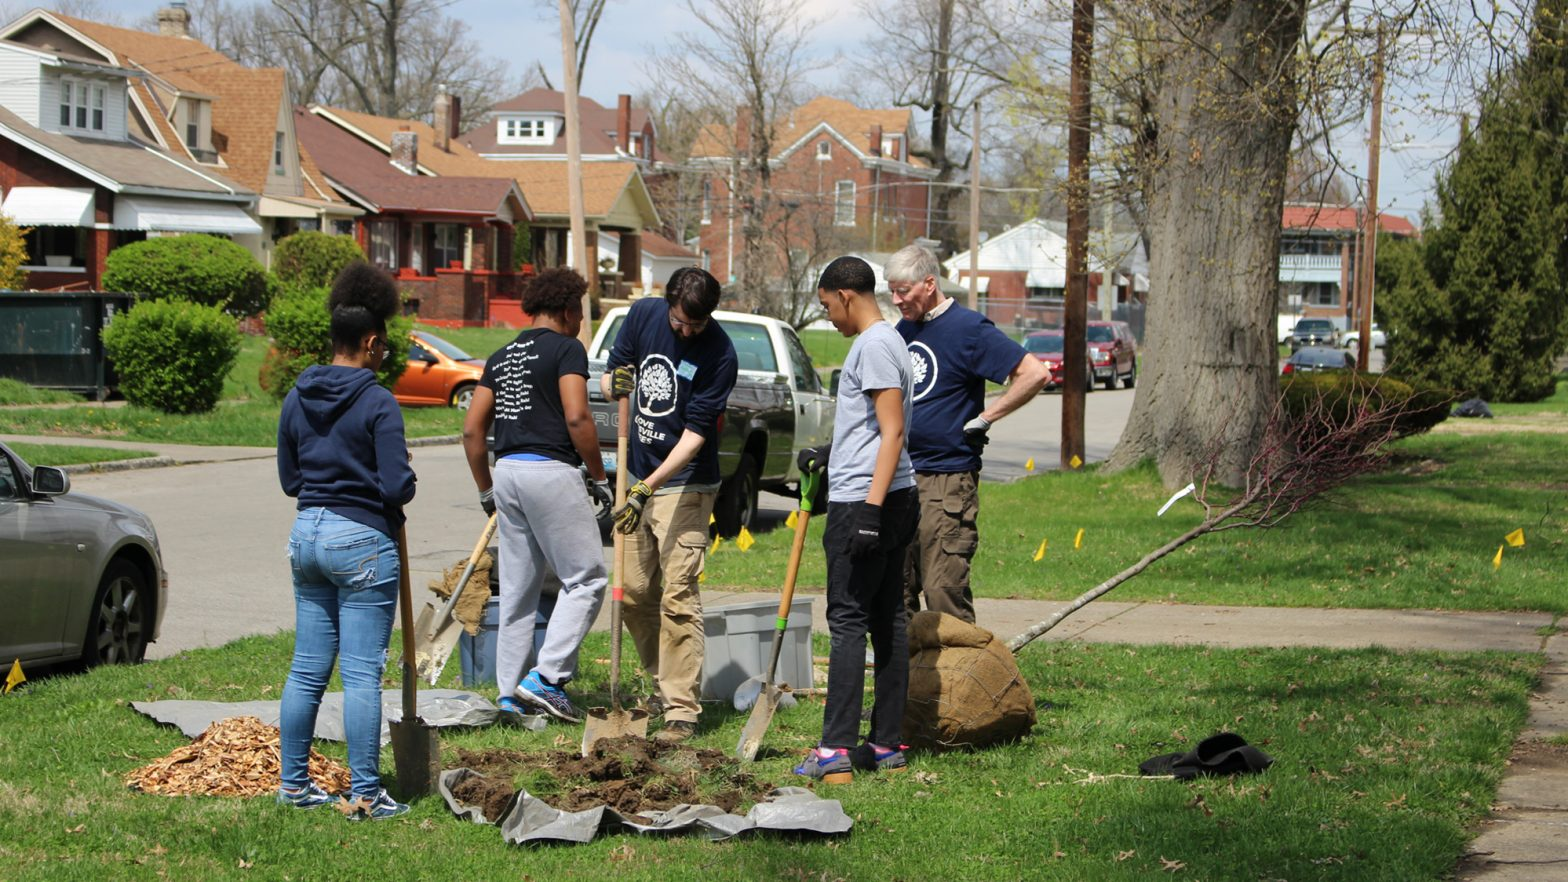 A group plants trees.